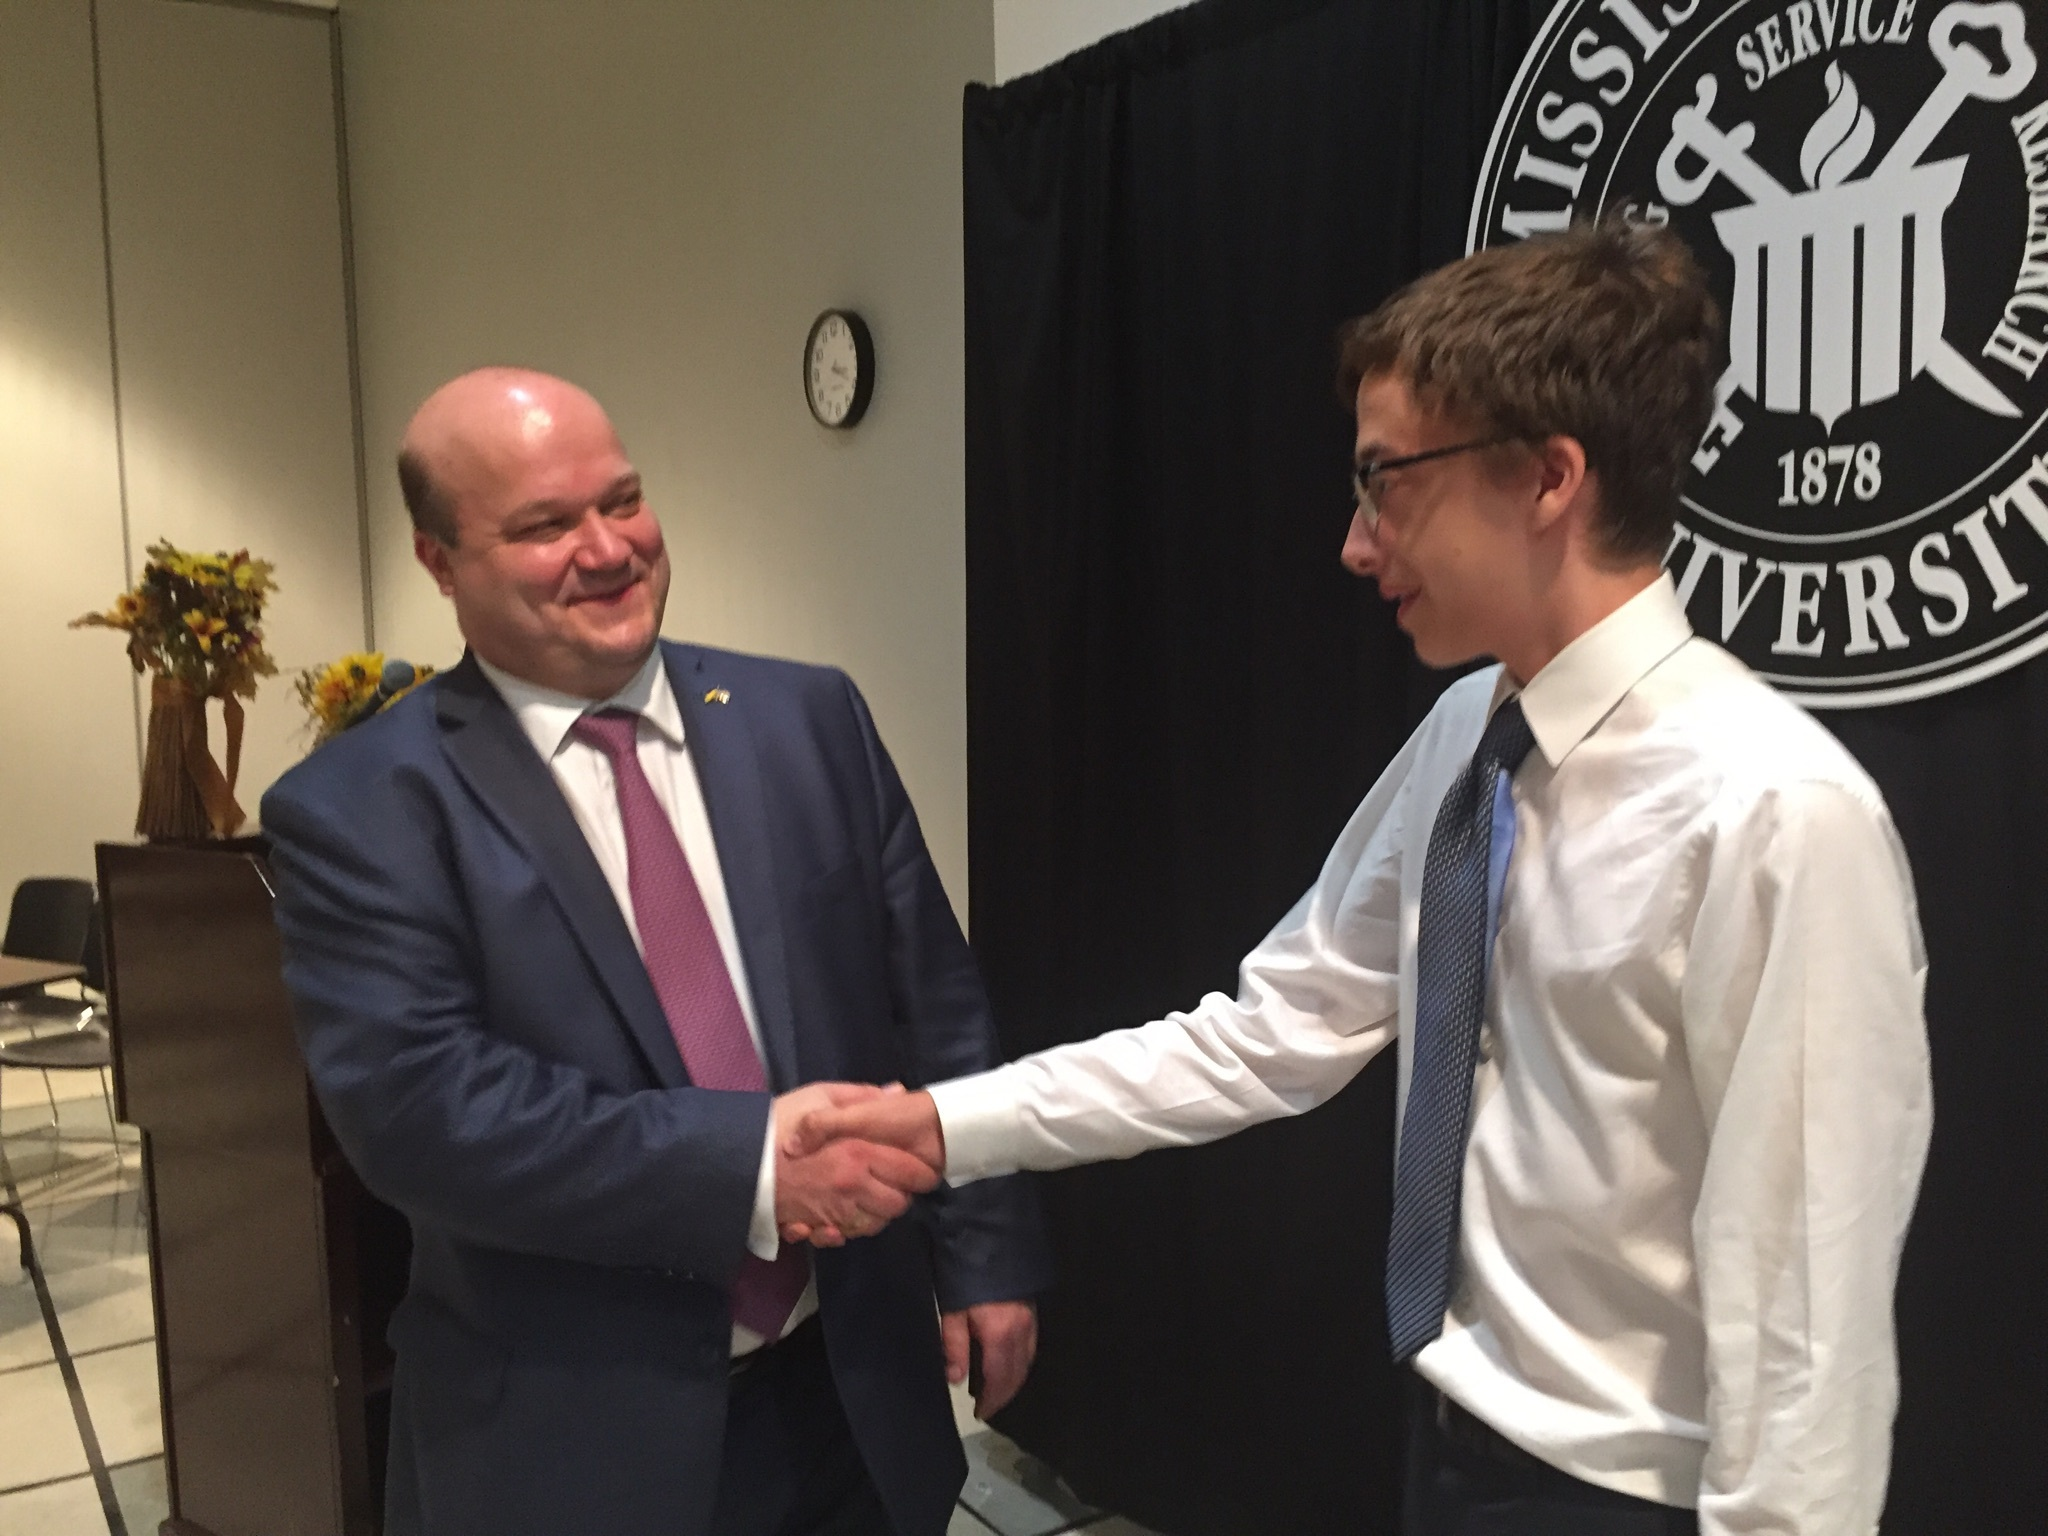 Ukrainian Ambassador to the US Valeriy Chaly shakes hands with MSMS student Liam McDougal.